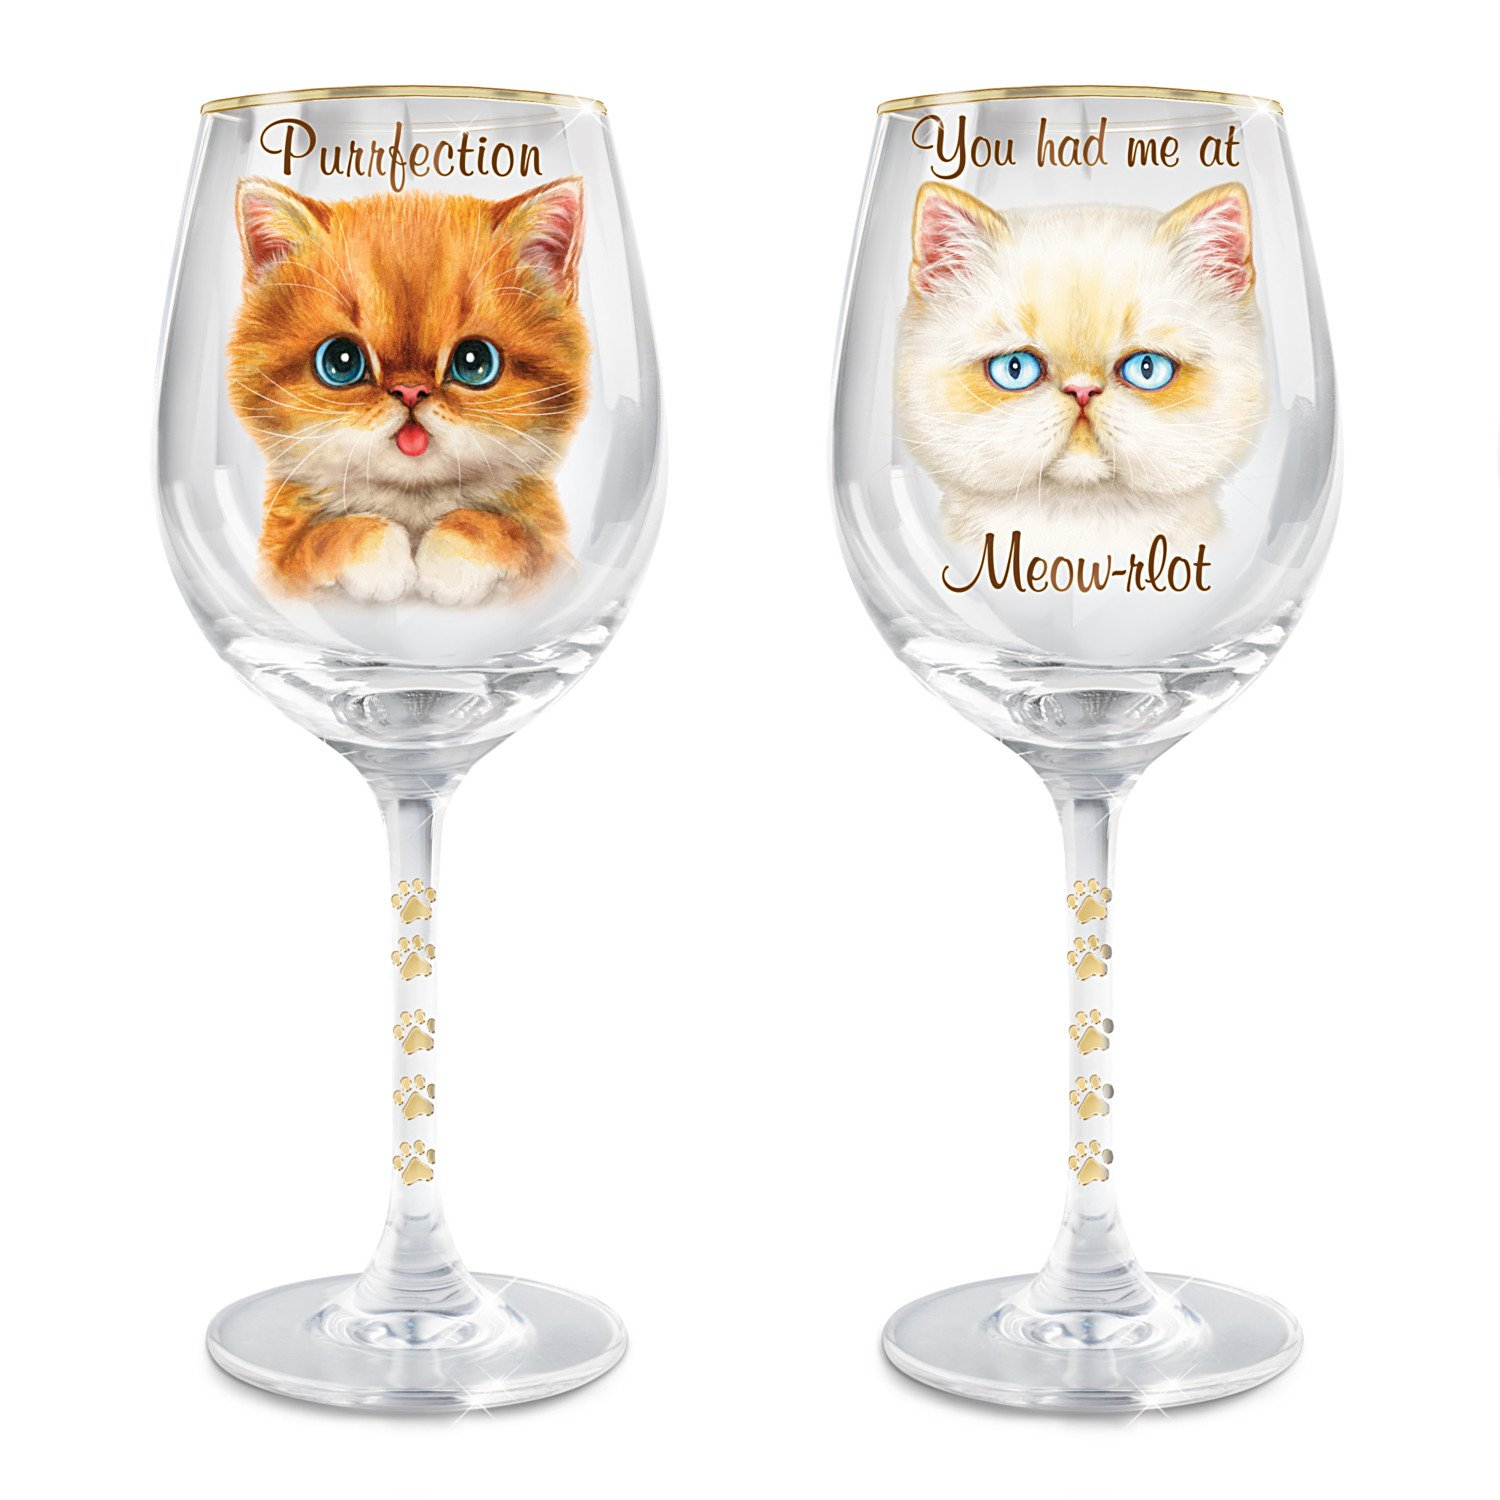 Wine Glasses with Kayomi Harai Cat Art from Bradford Exchange: Set of 2